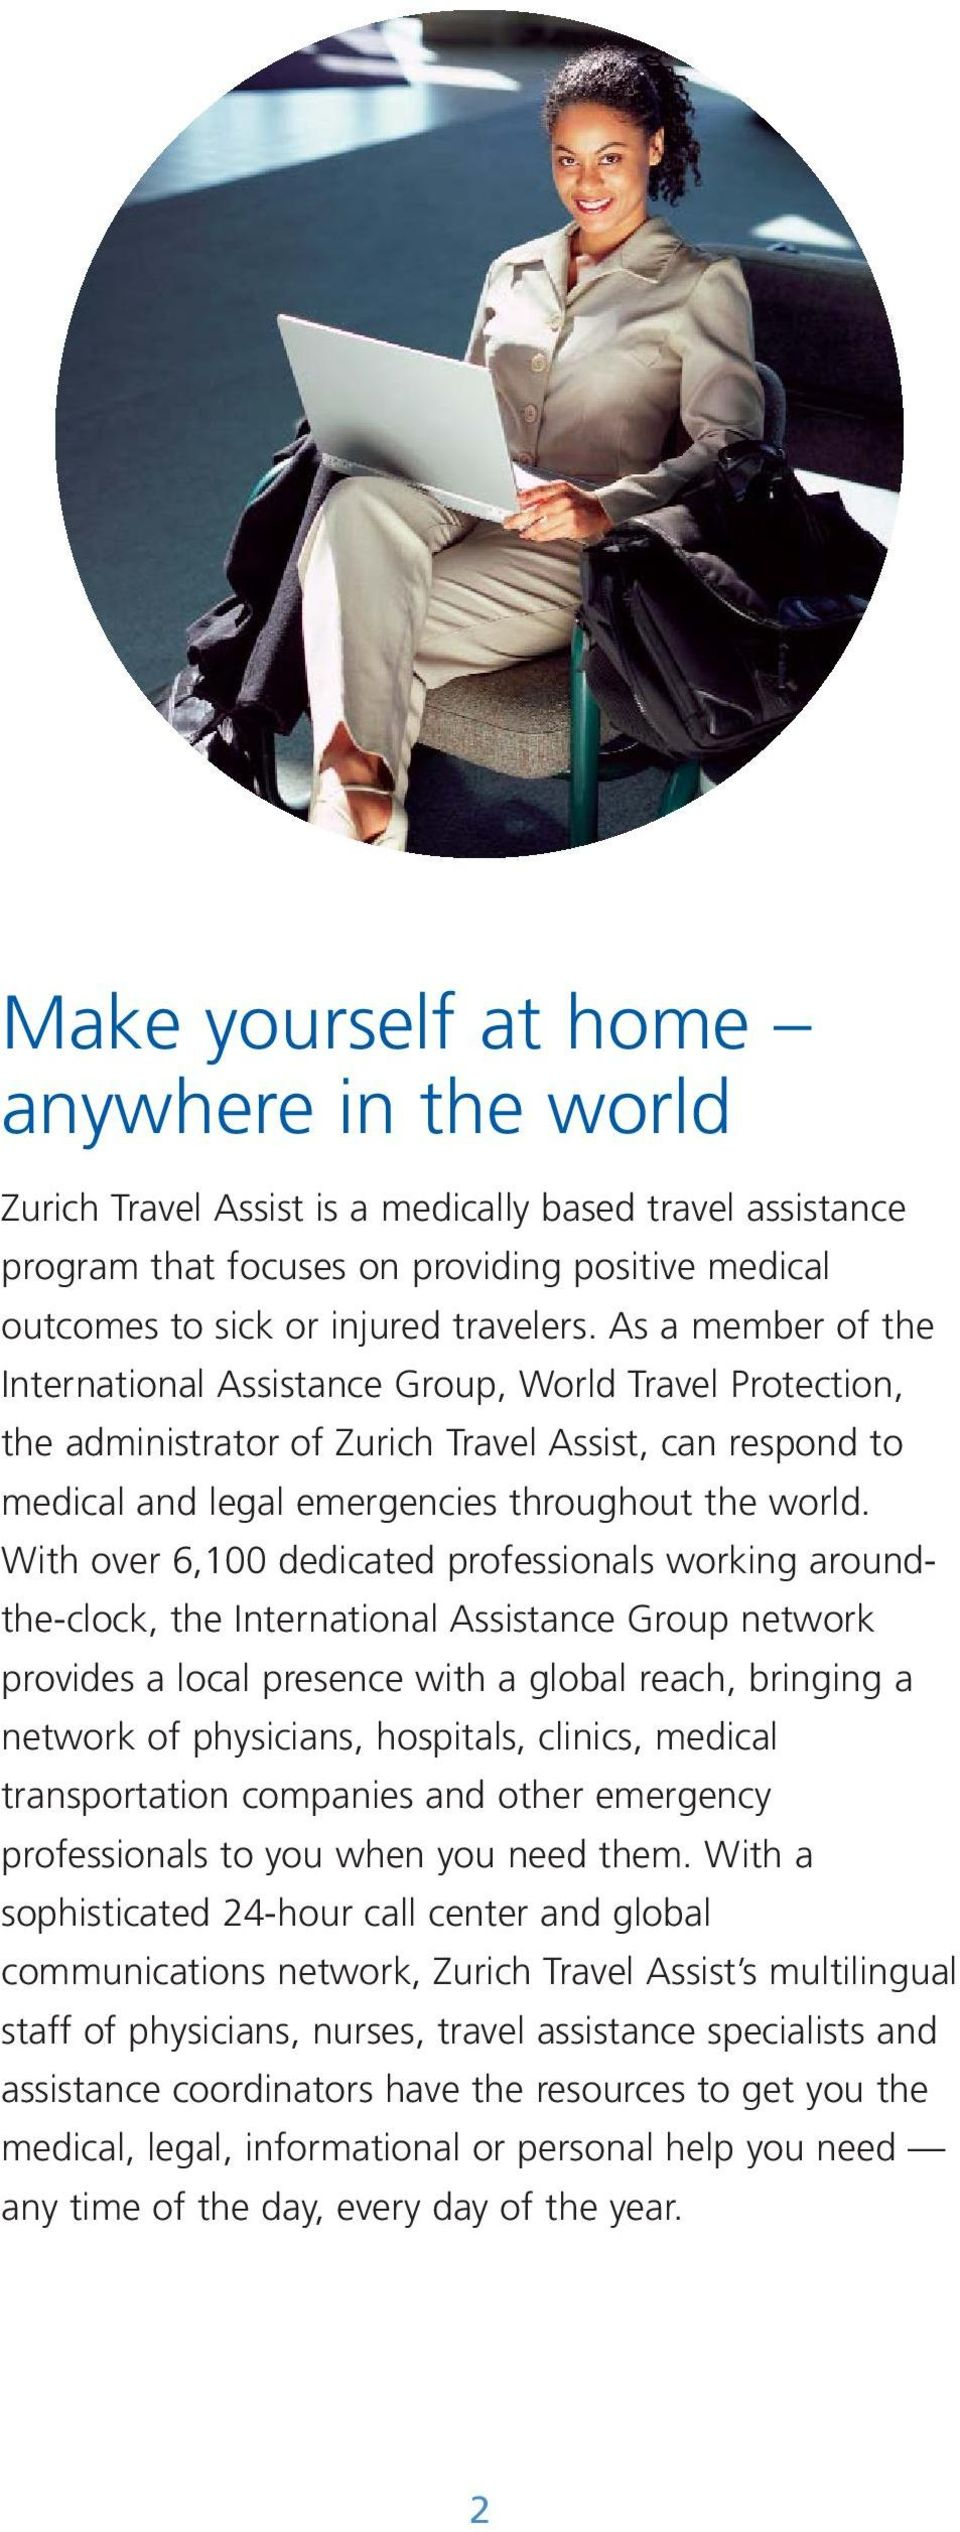 With over 6,100 dedicated professionals working aroundthe-clock, the International Assistance Group network provides a local presence with a global reach, bringing a network of physicians, hospitals,